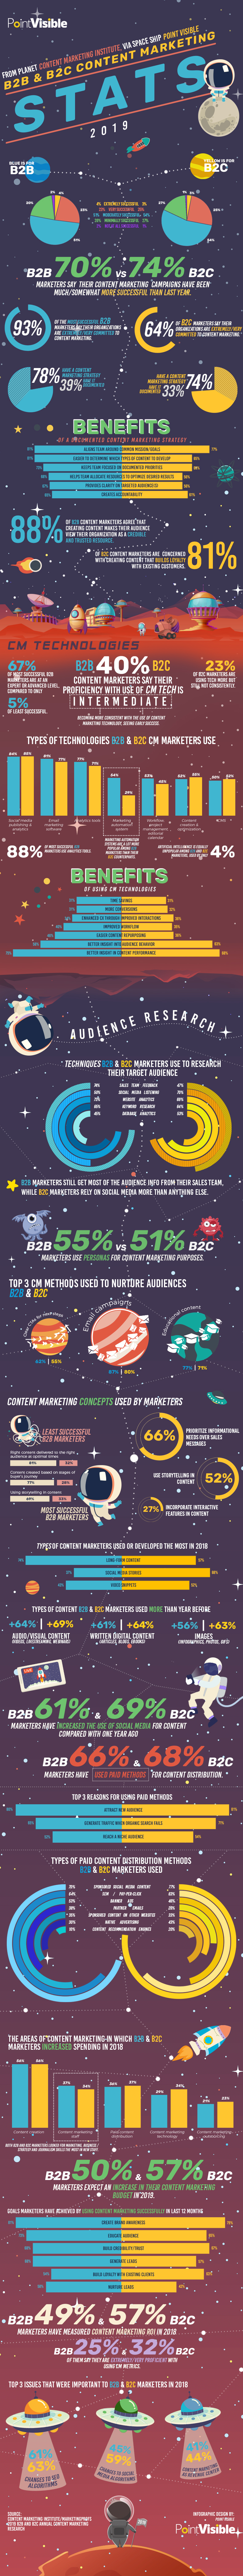 B2B & B2C Content Marketing Stats 2019